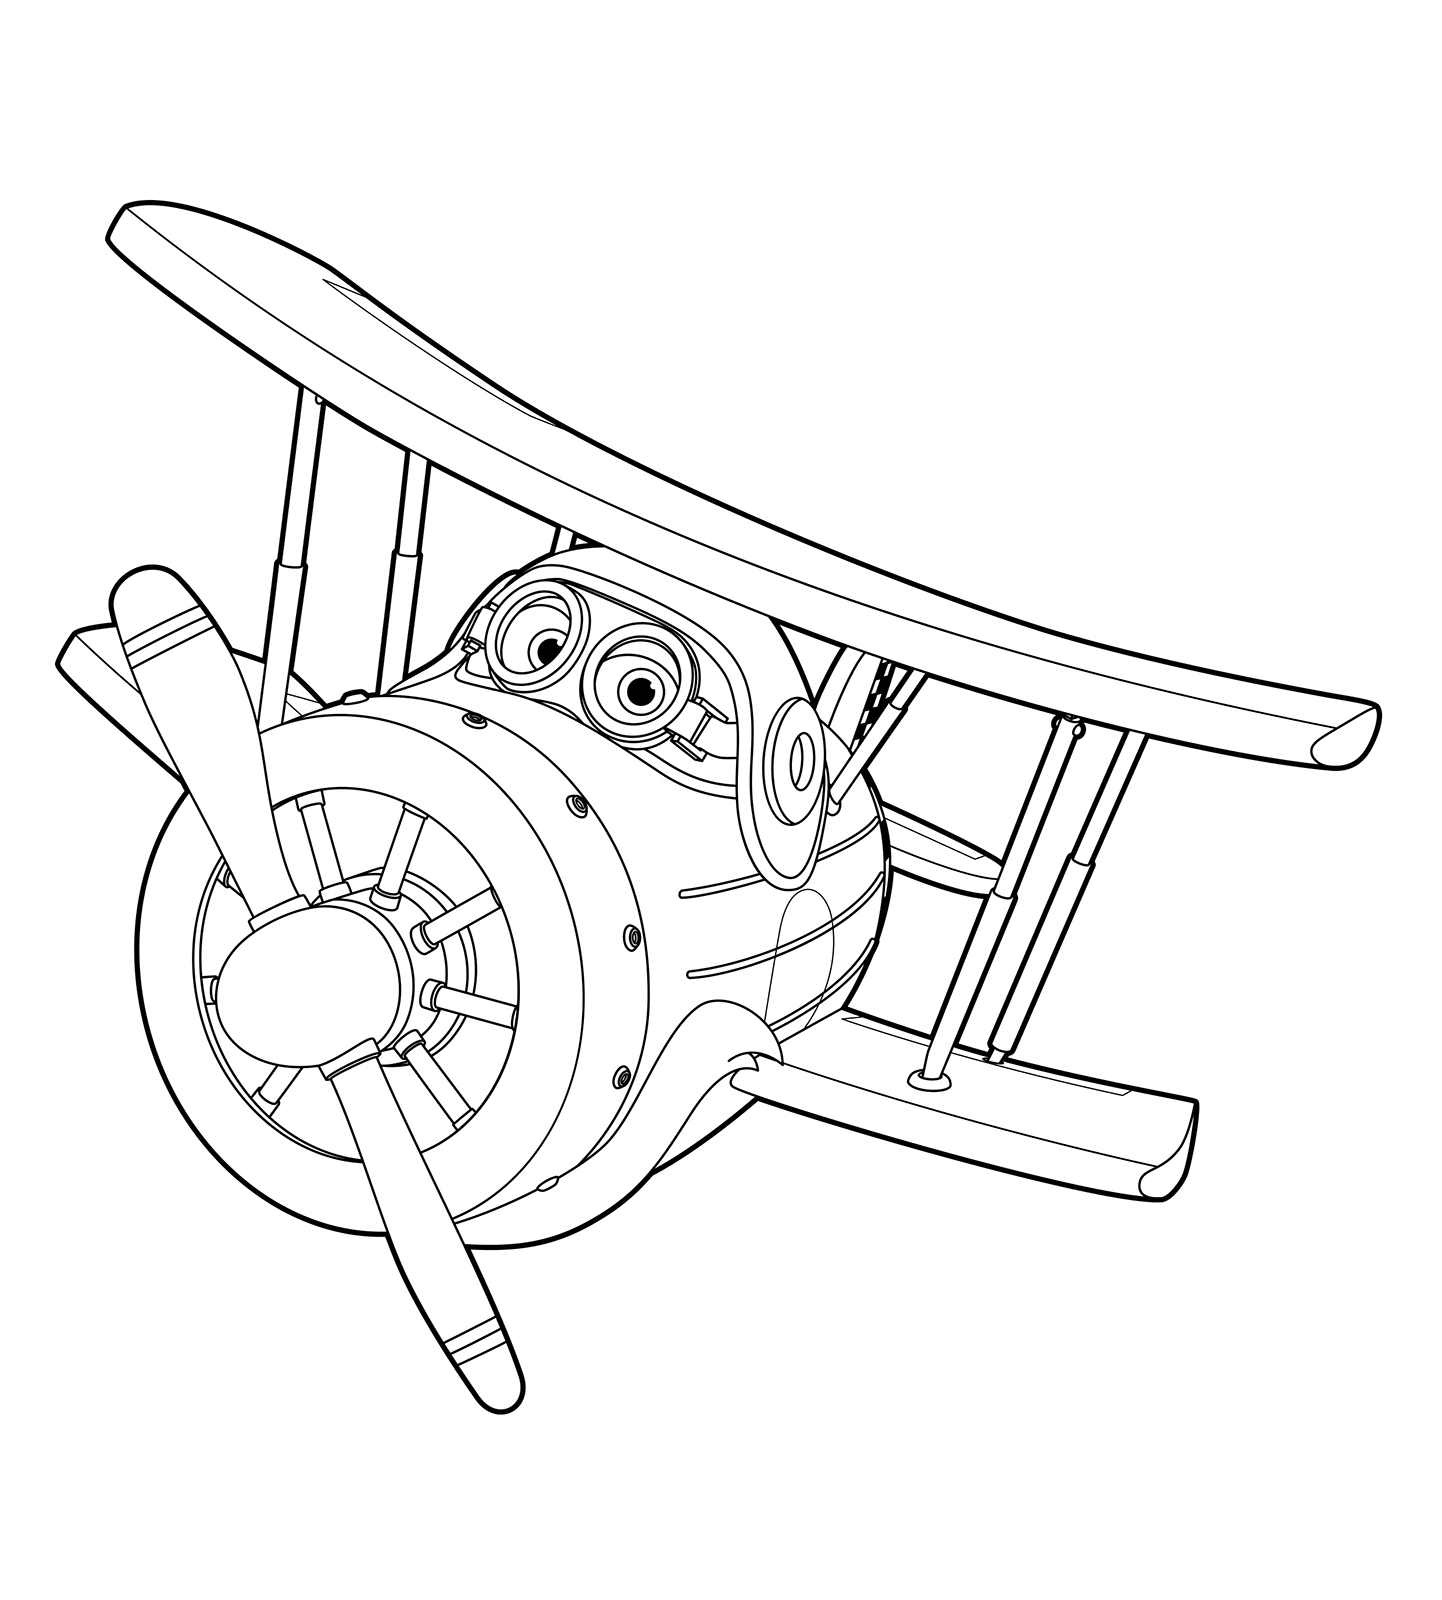 Super wings grand albert in volo for Disegni da colorare super wings